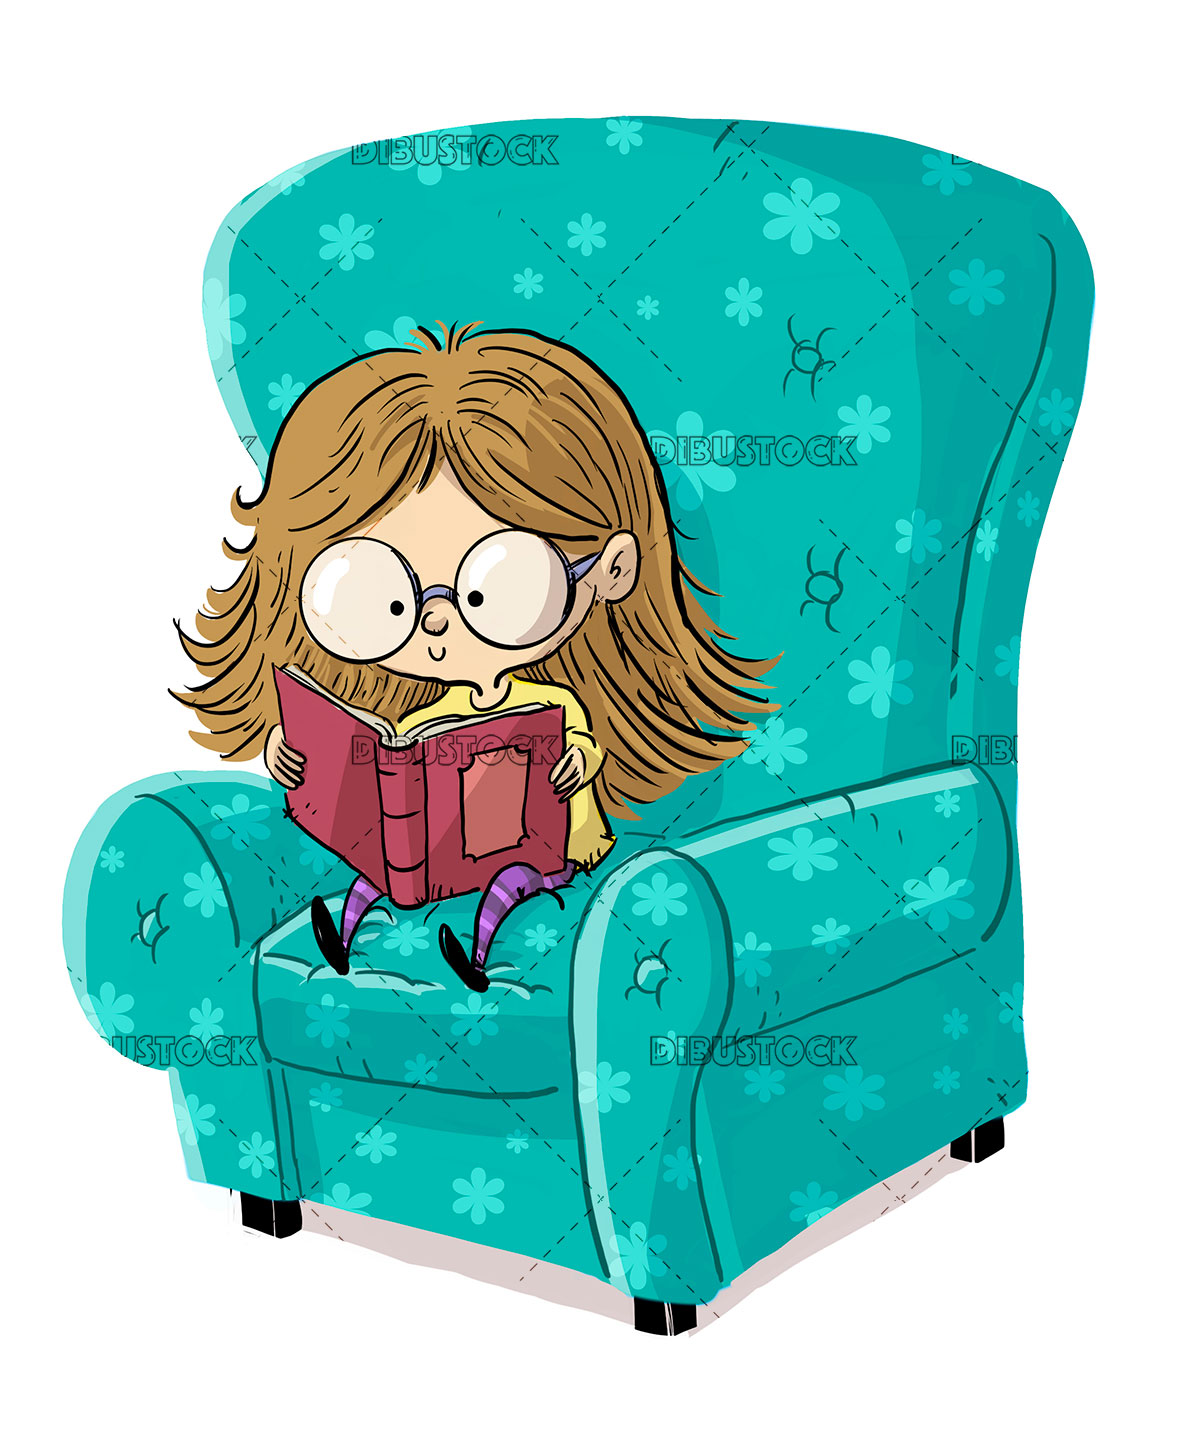 Little girl with glasses reading a book in a chair